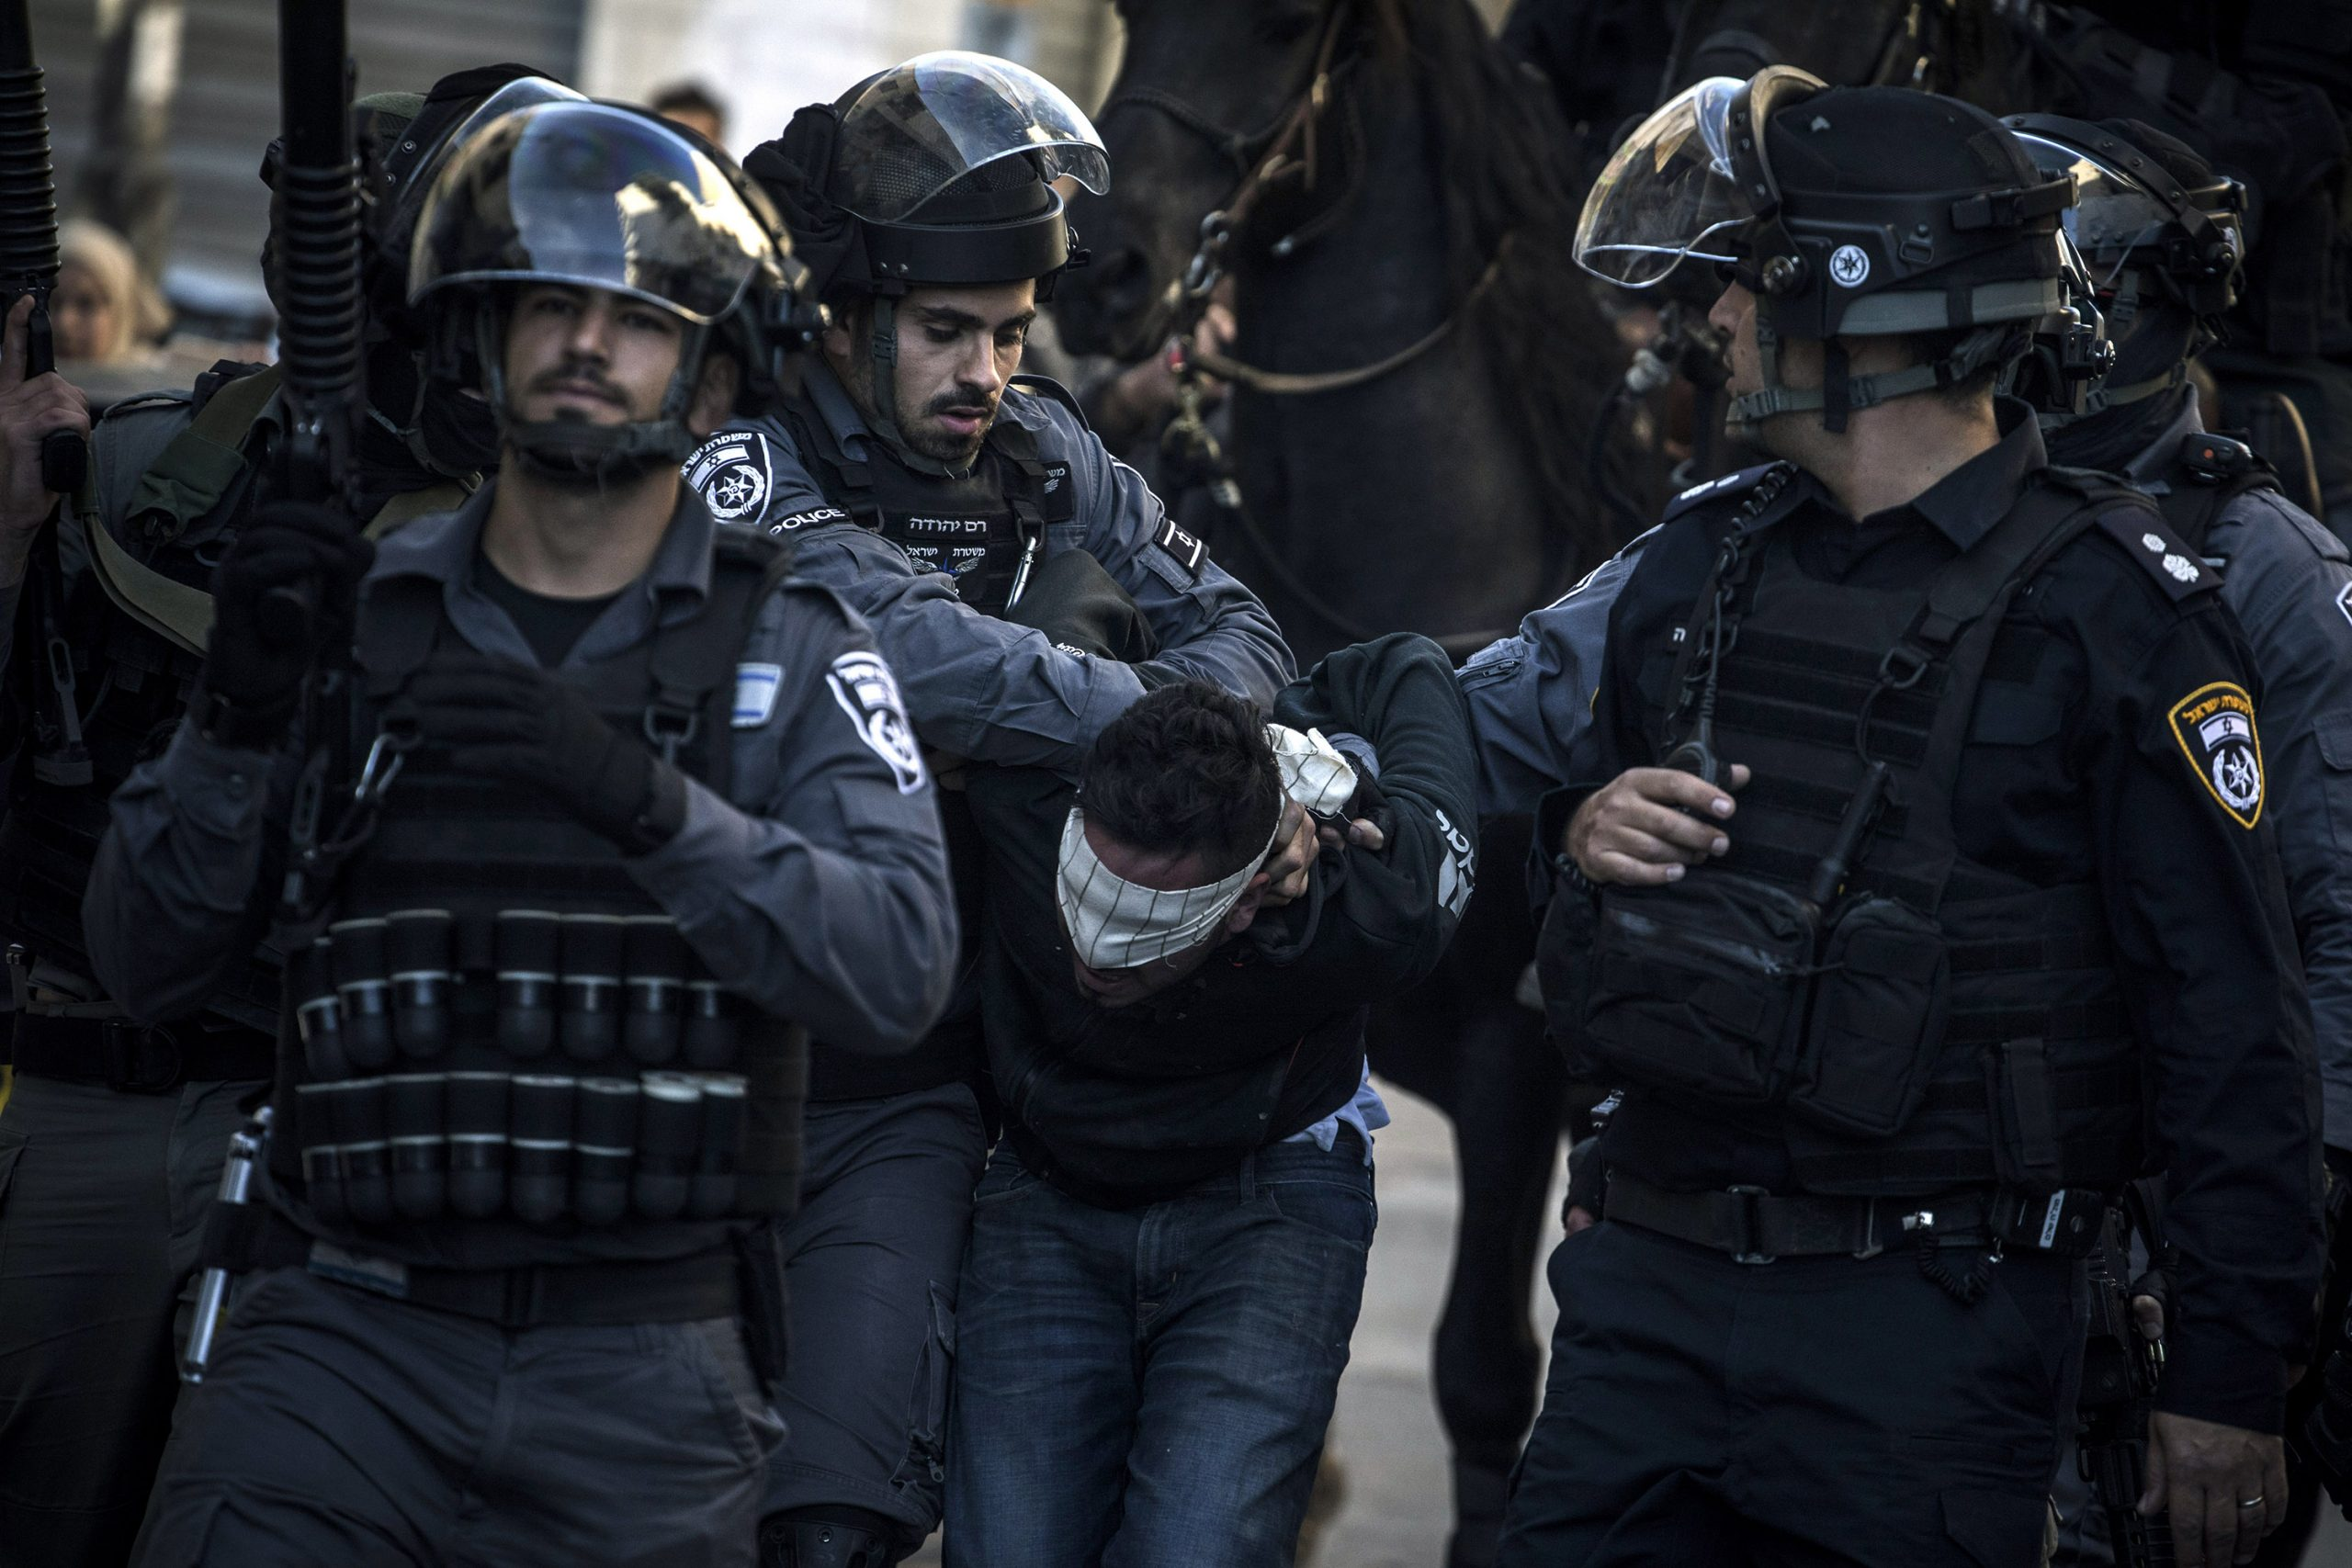 9 December 2017: Police officers arrest a Palestinian protester in Jerusalem. The Israeli police have long been used to crush Palestinian resistance and enforce the occupation of Palestine. (Photograph by Ilia Yefimovich/ Getty Images)